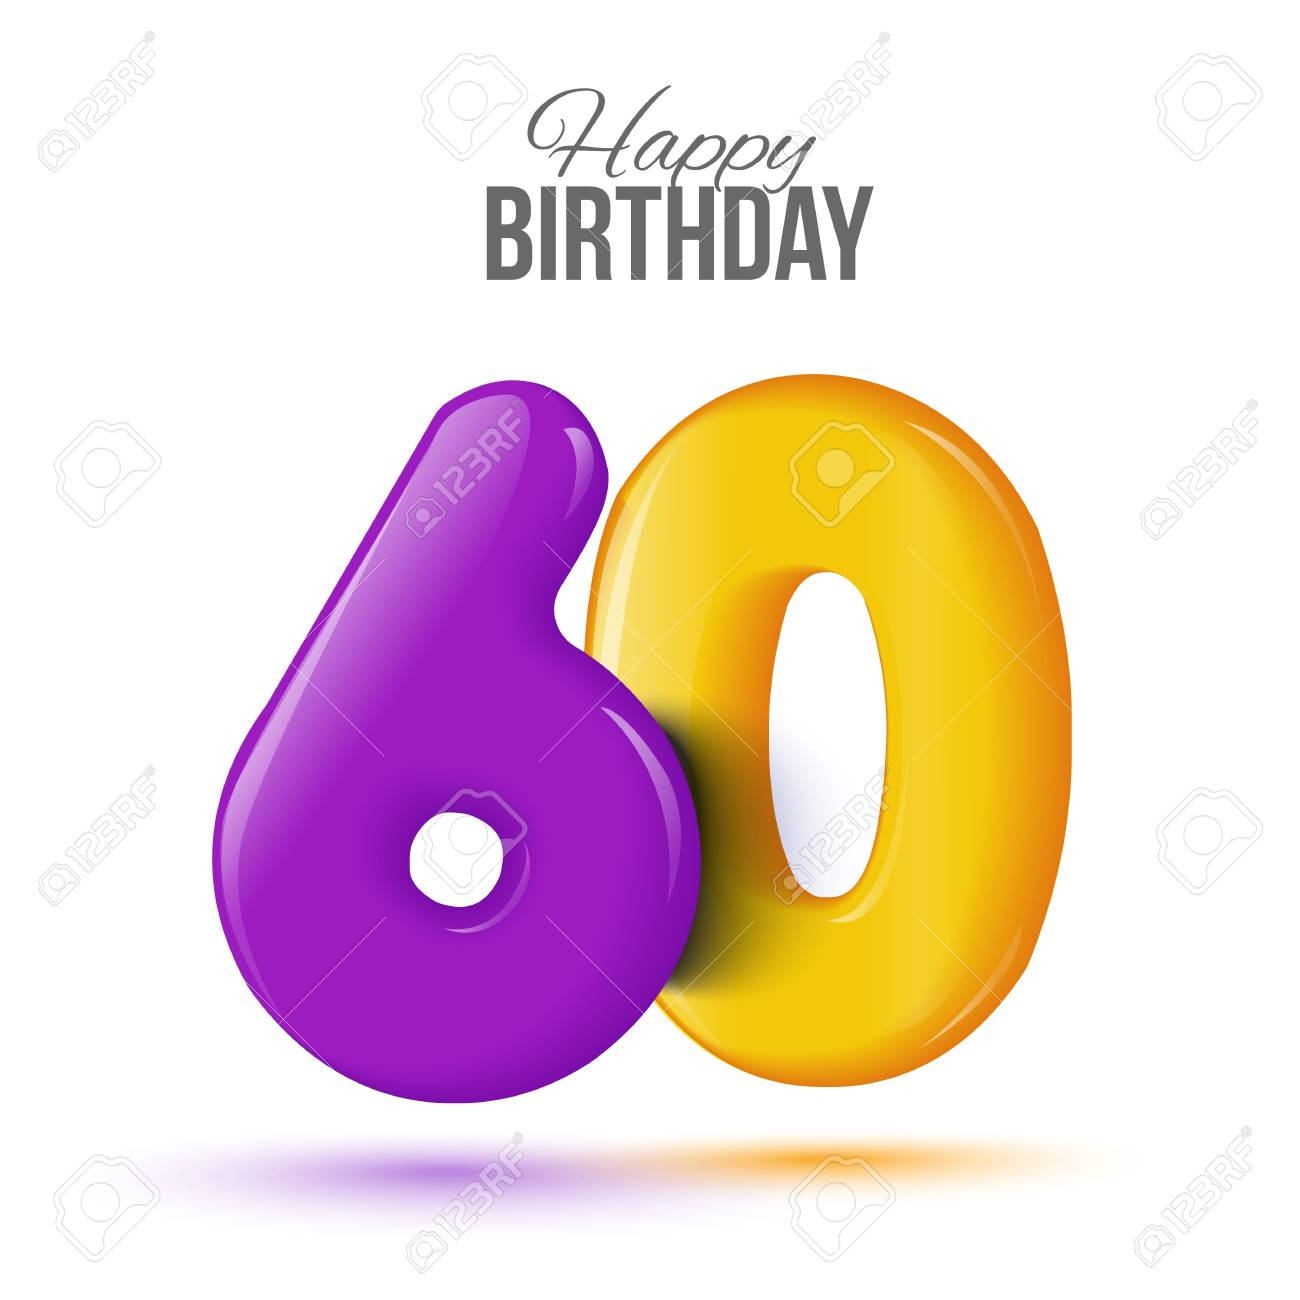 Sixty Birthday Greeting Card Template With 3d Shiny Number Sixty Balloon On White Background Birthday Party Greeting Invitation Card Banner With